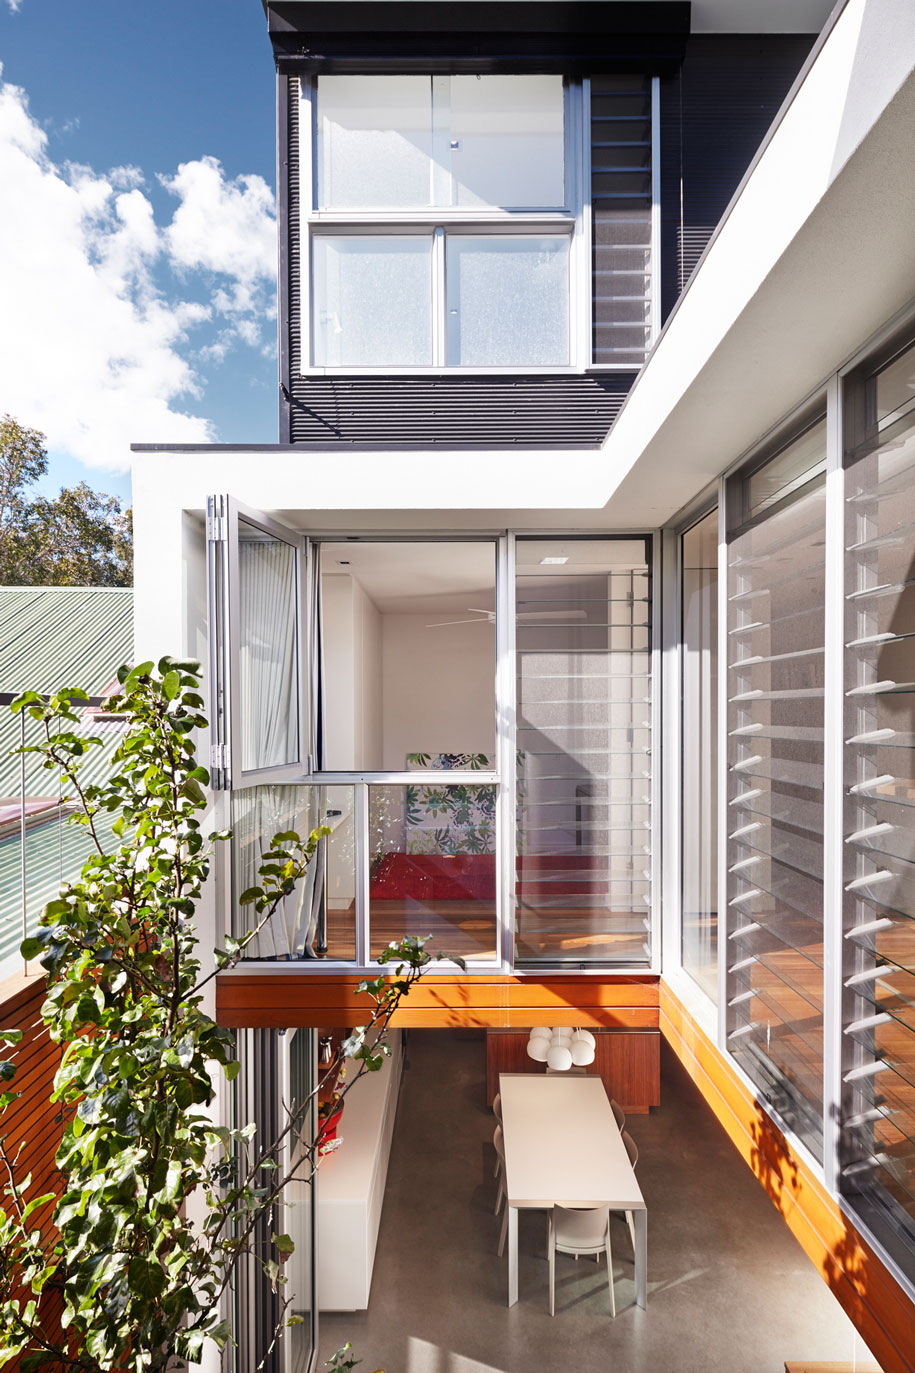 Elaine-Richardson-Architects-Habitus-Living-10